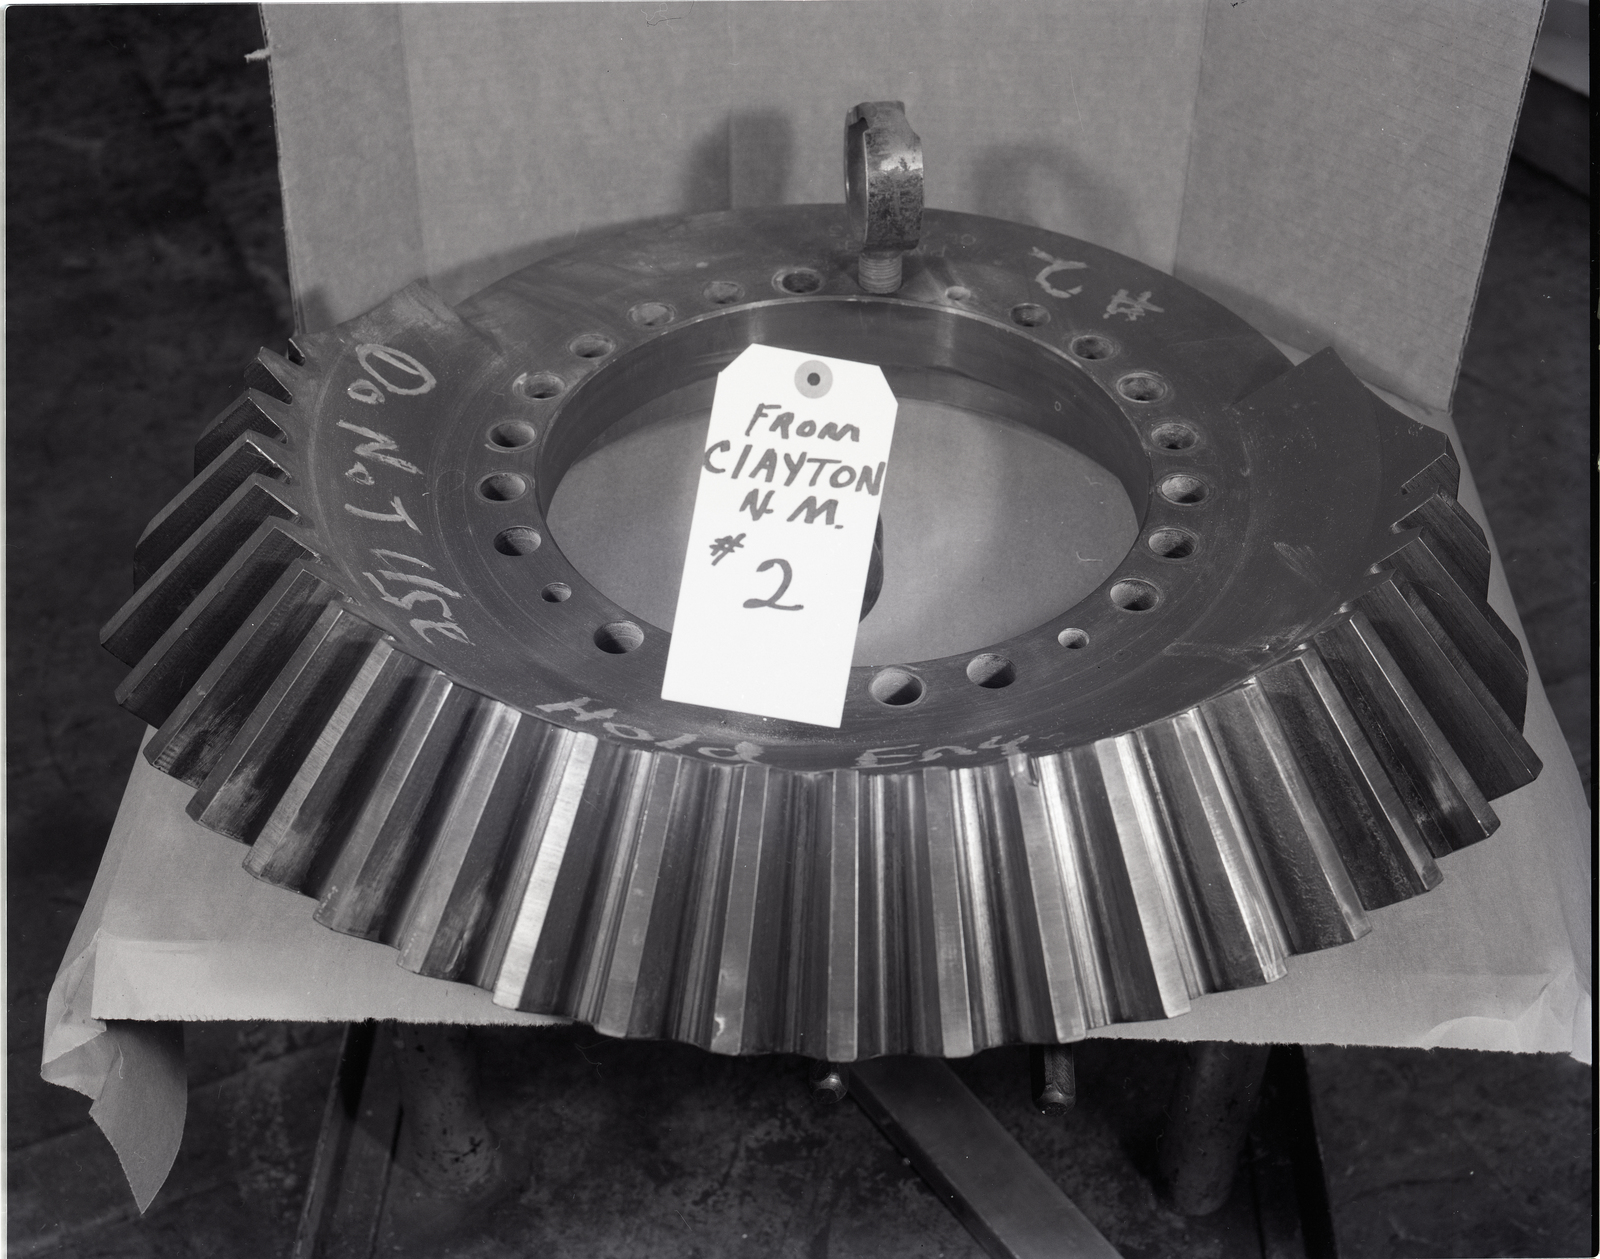 MACHINE SHOP - VARIOUS HUB PARTS AND BEARINGS - STA 81.5 RIB ON THE MOD-O WIND TURBINE BLADE